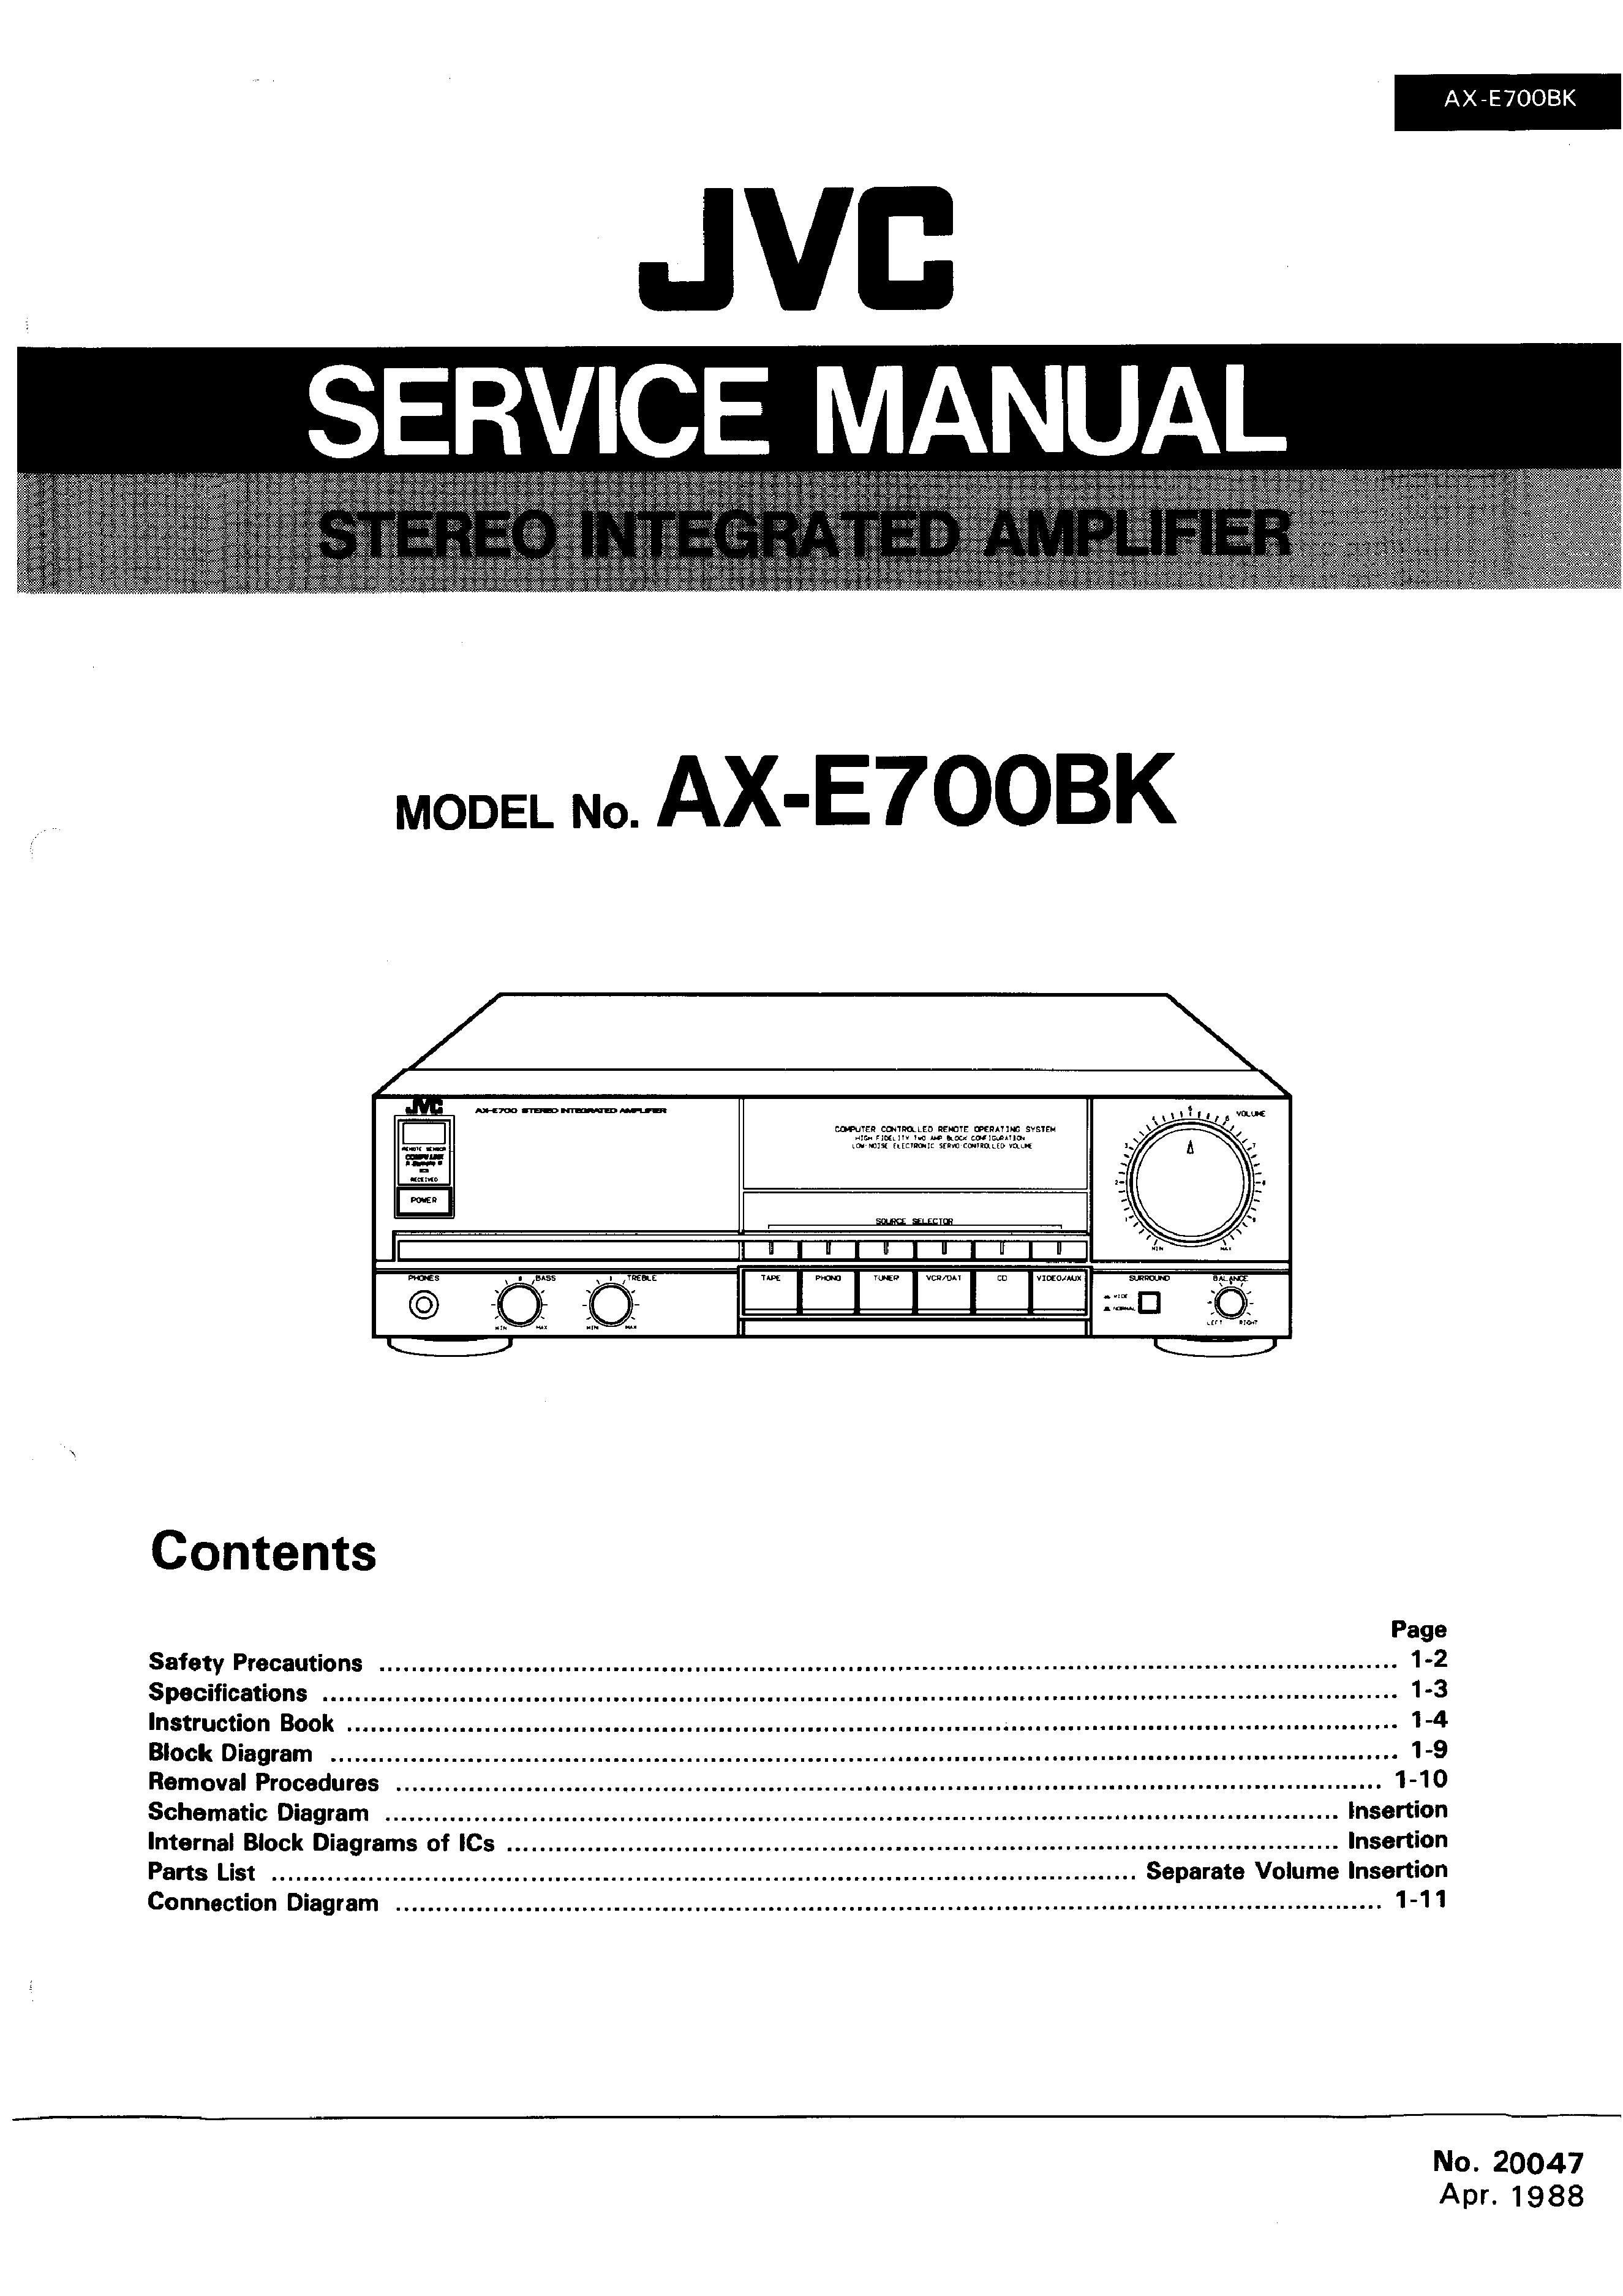 Jvc Axe700bk Service Manual Immediate Download Schematic Diagram Background Image